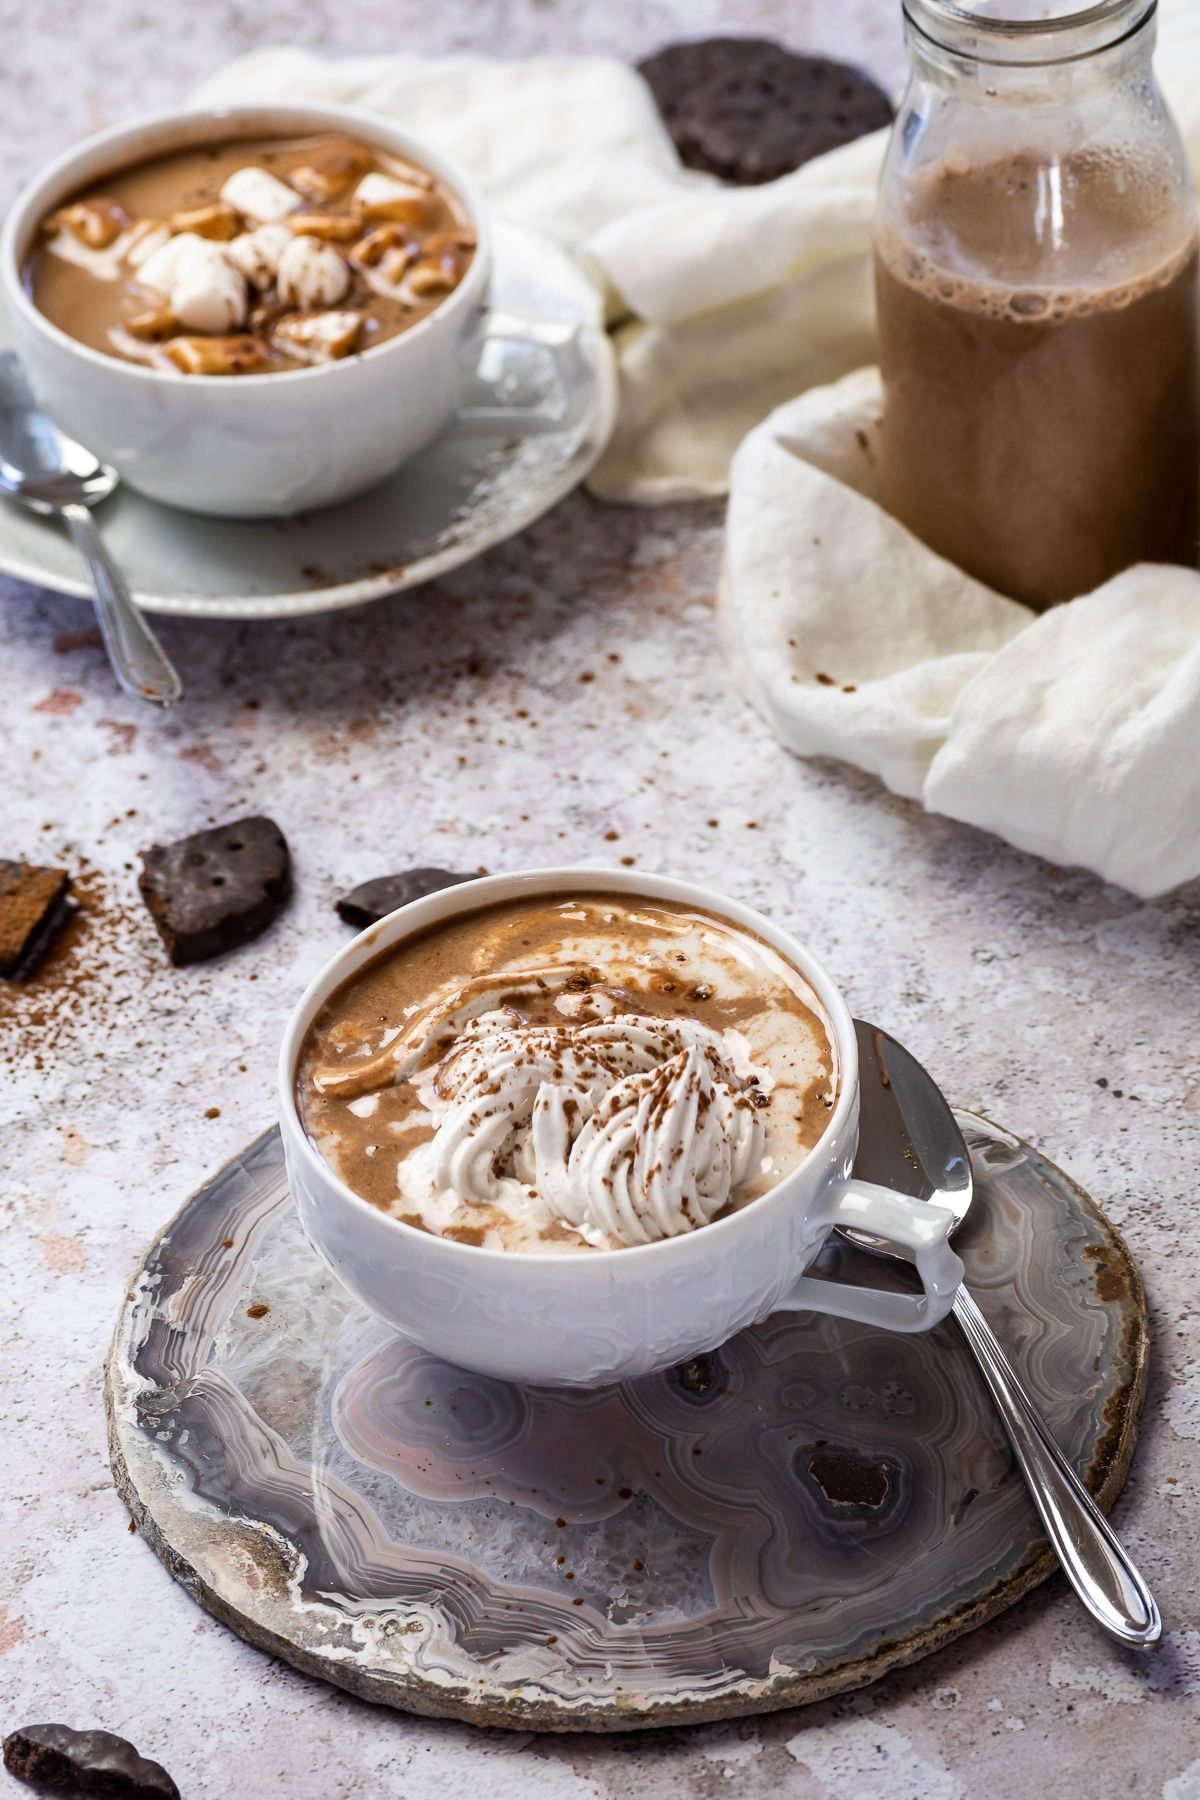 Creamy Vegan Hot Chocolate Refined Sugar Free In 2020 Almond Milk Recipes Vegan Holiday Recipes Chocolate Drink Recipes